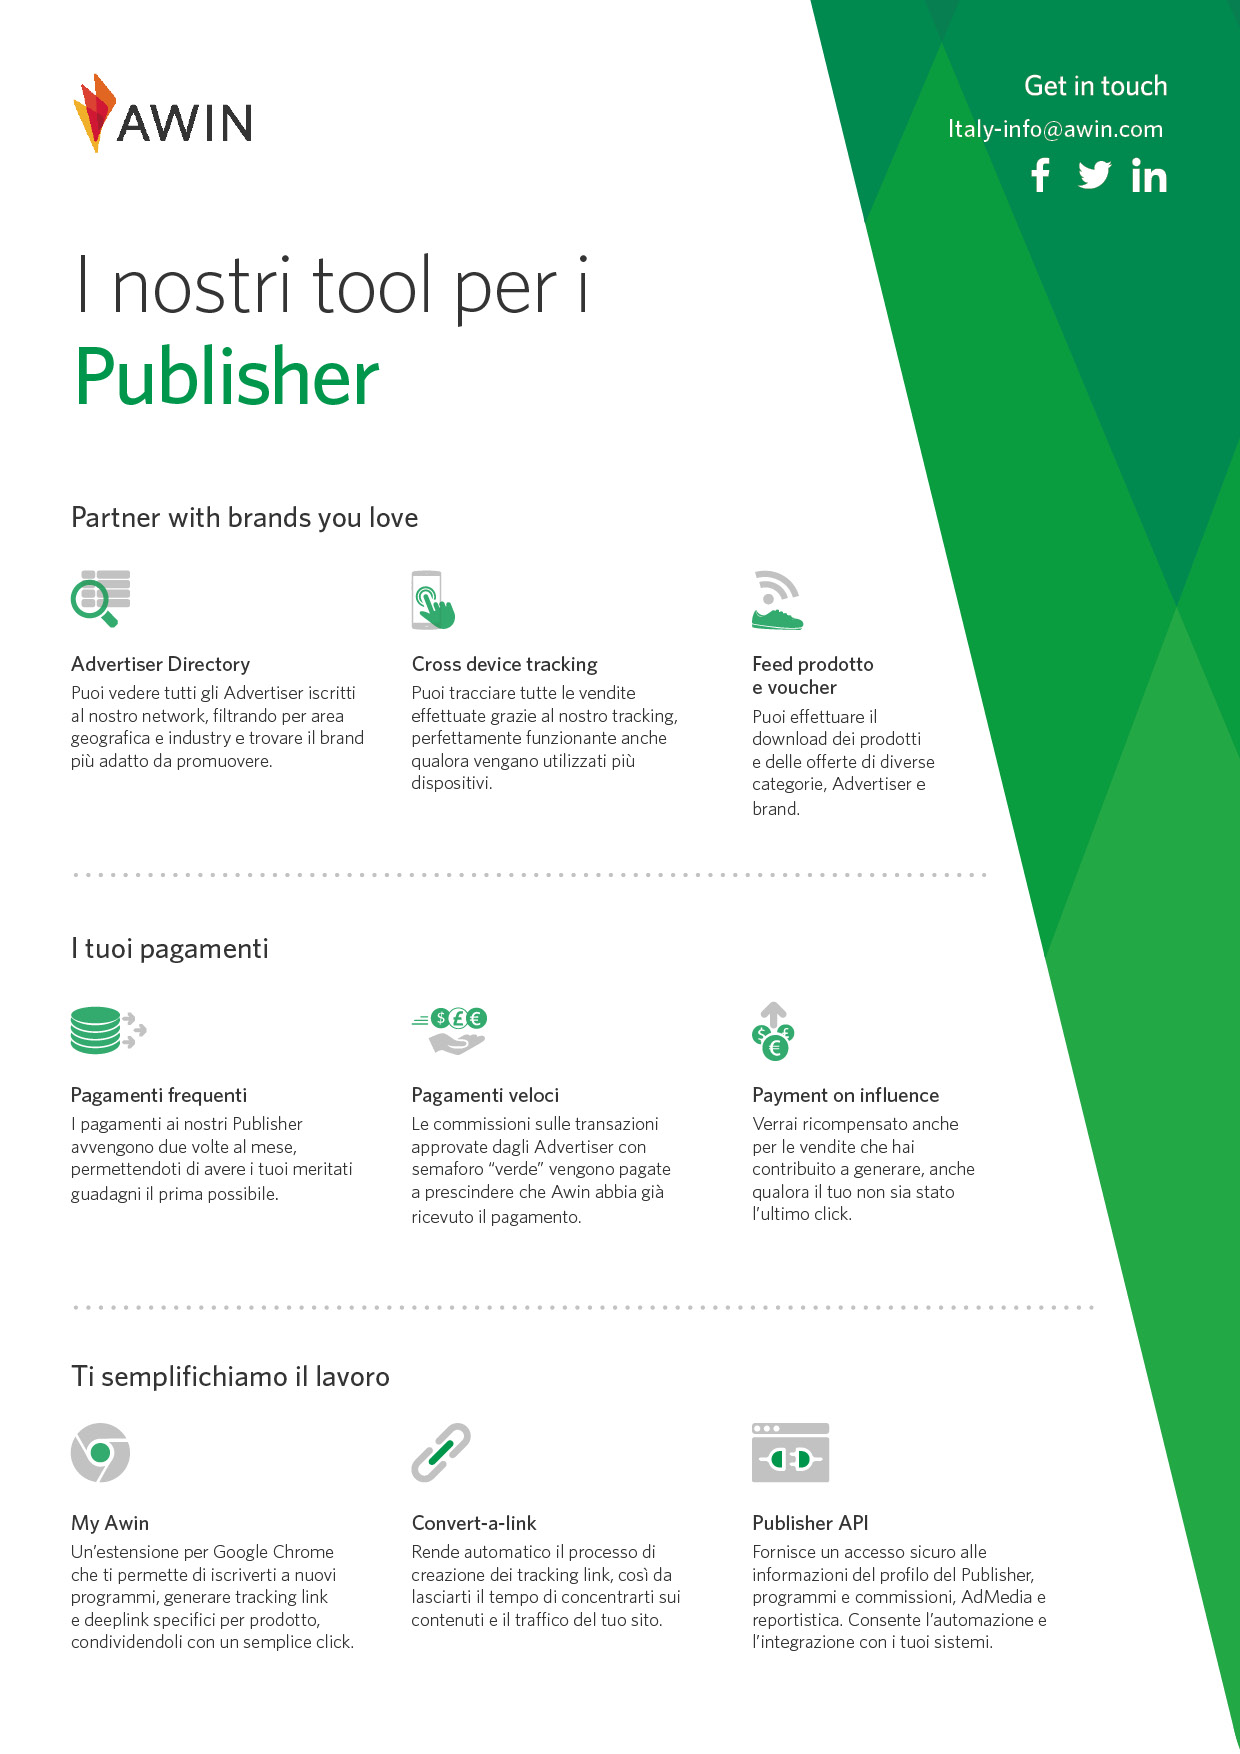 il nostro one pager tool per Publisher